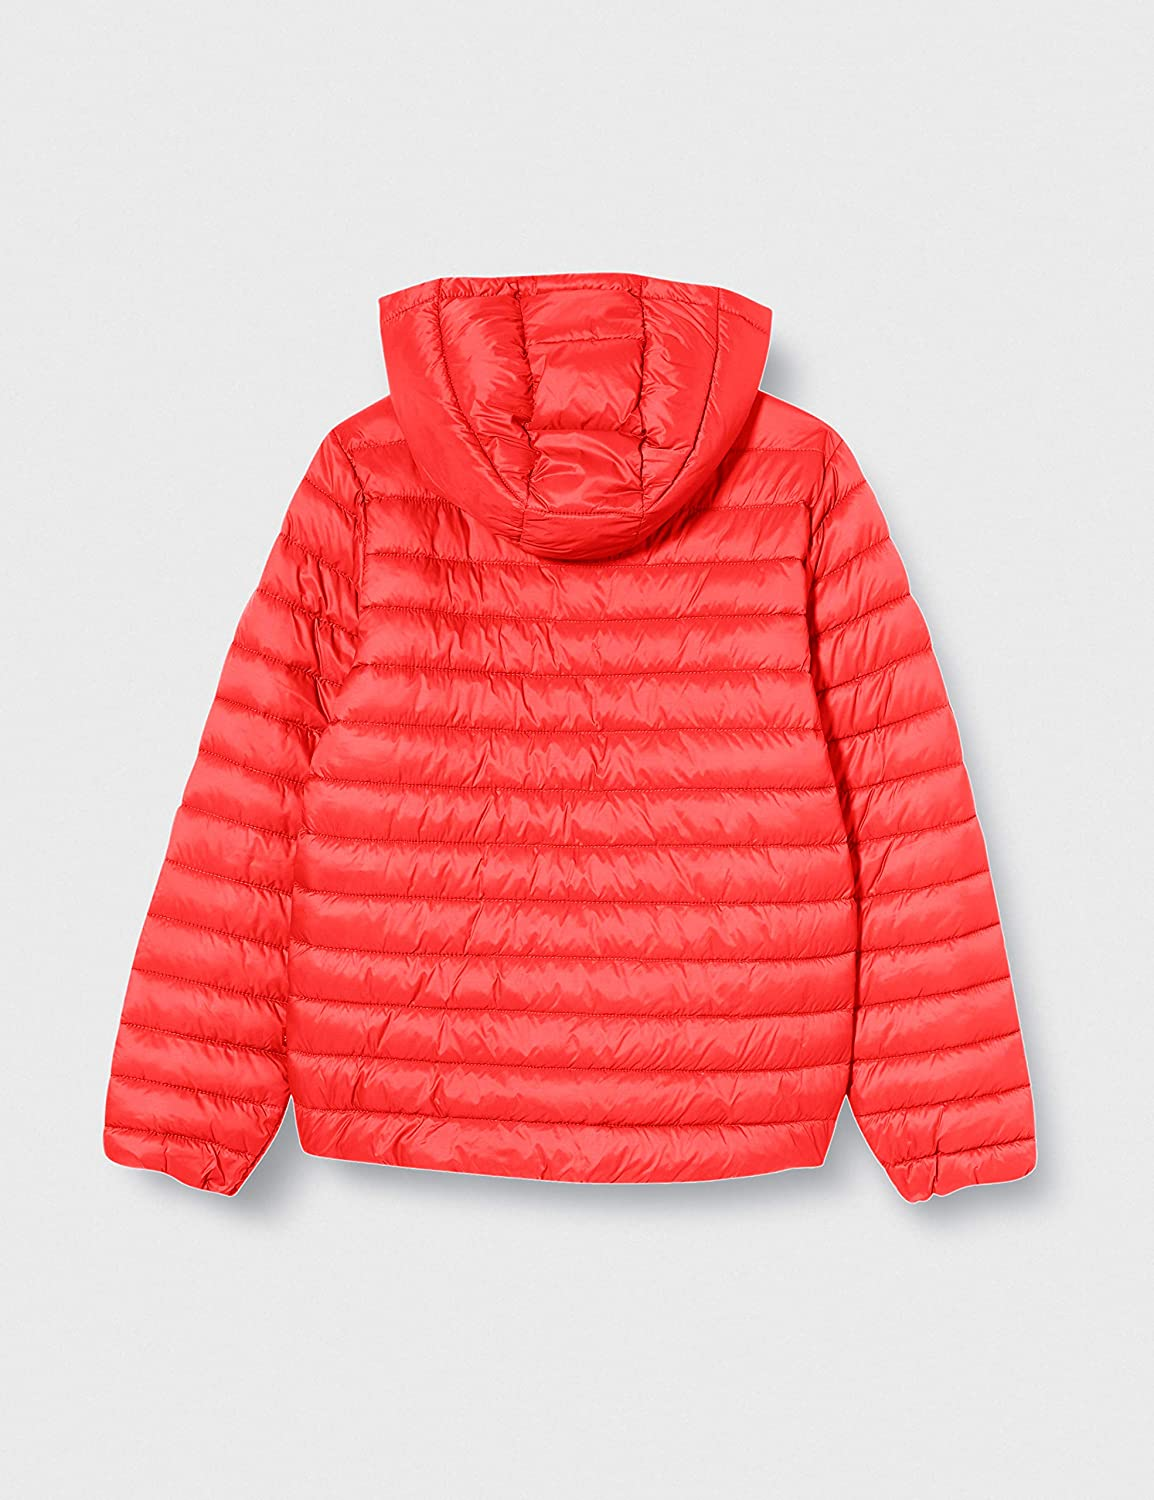 United Colors of Benetton Cappotto Bambino